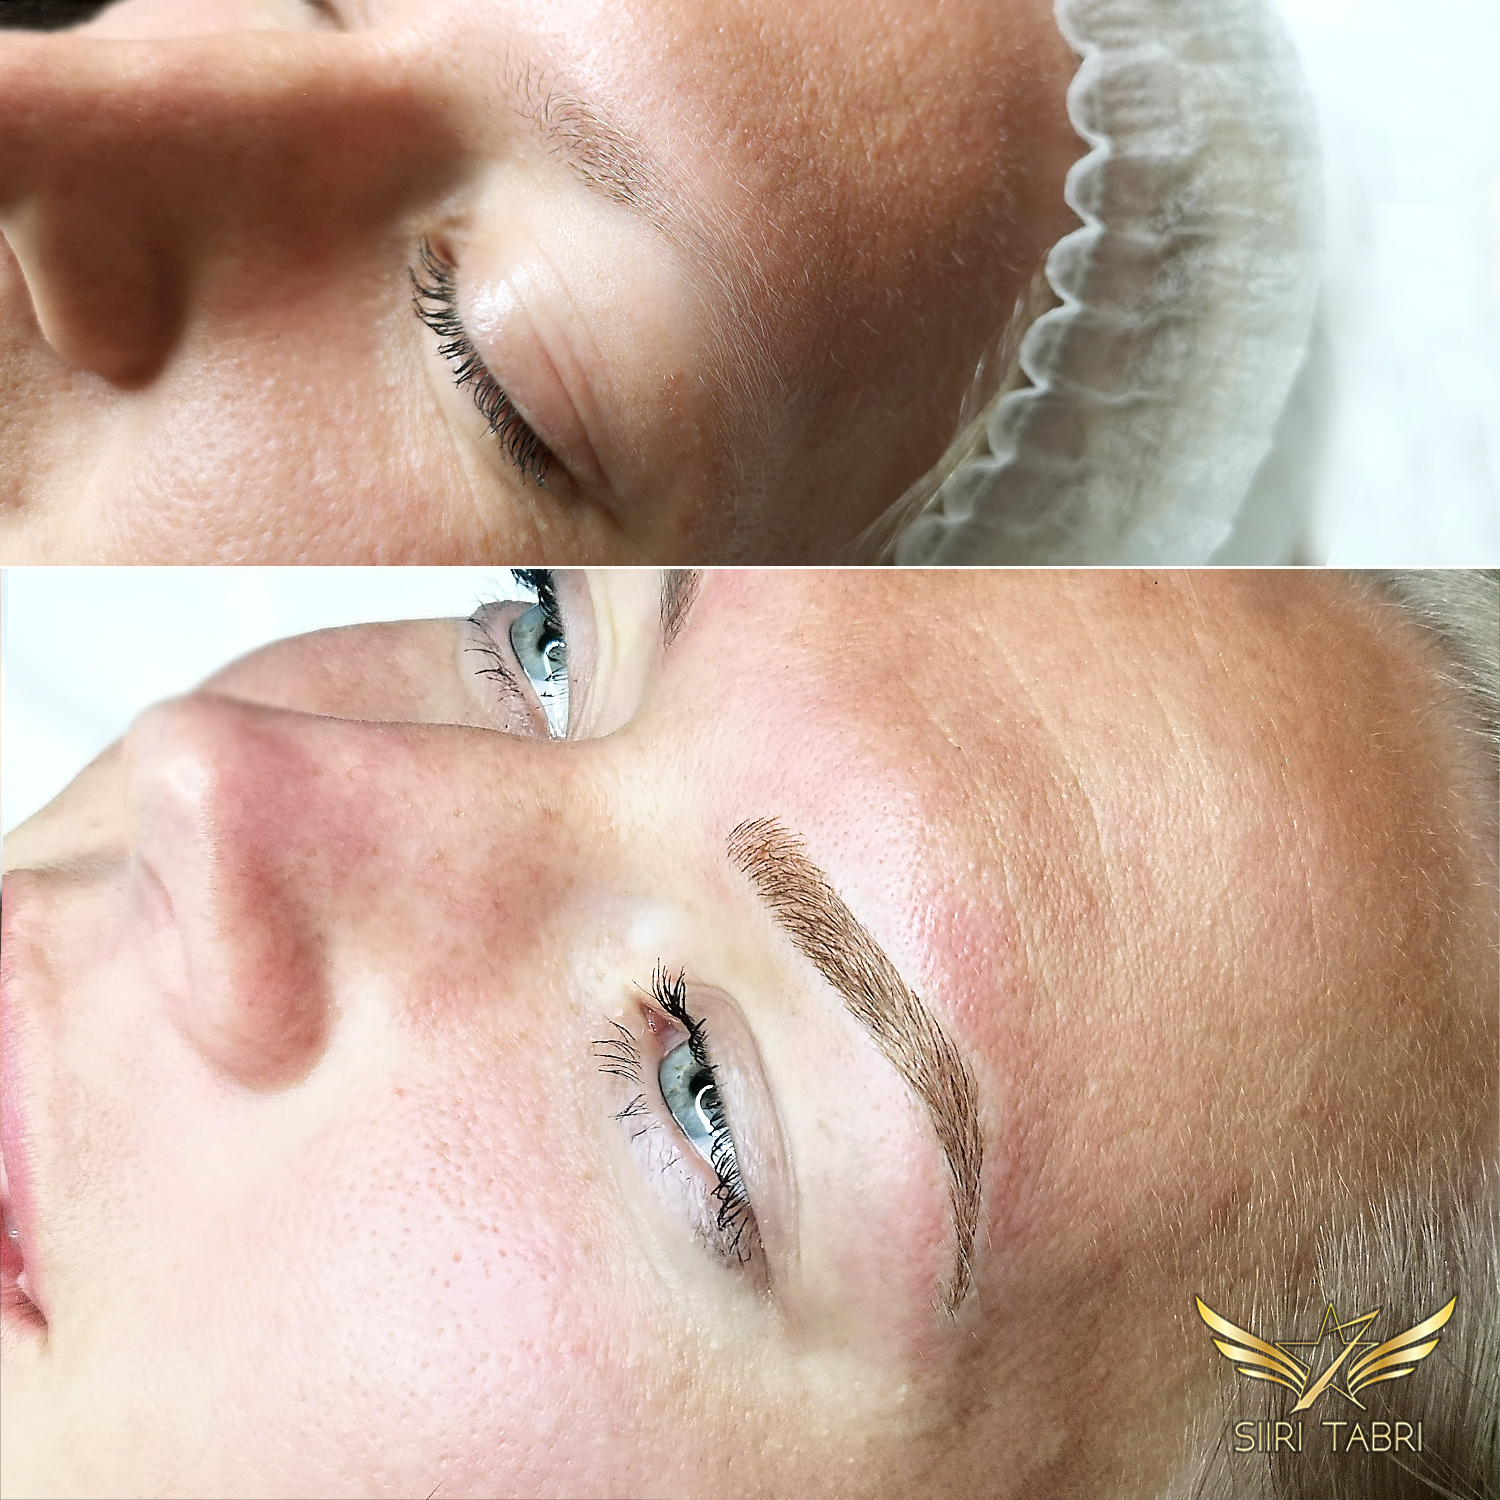 Light microblading. This really weak brow was turned into excellent with Light microblading. The end result looked so natural that other people were convinced it was her natural brow.